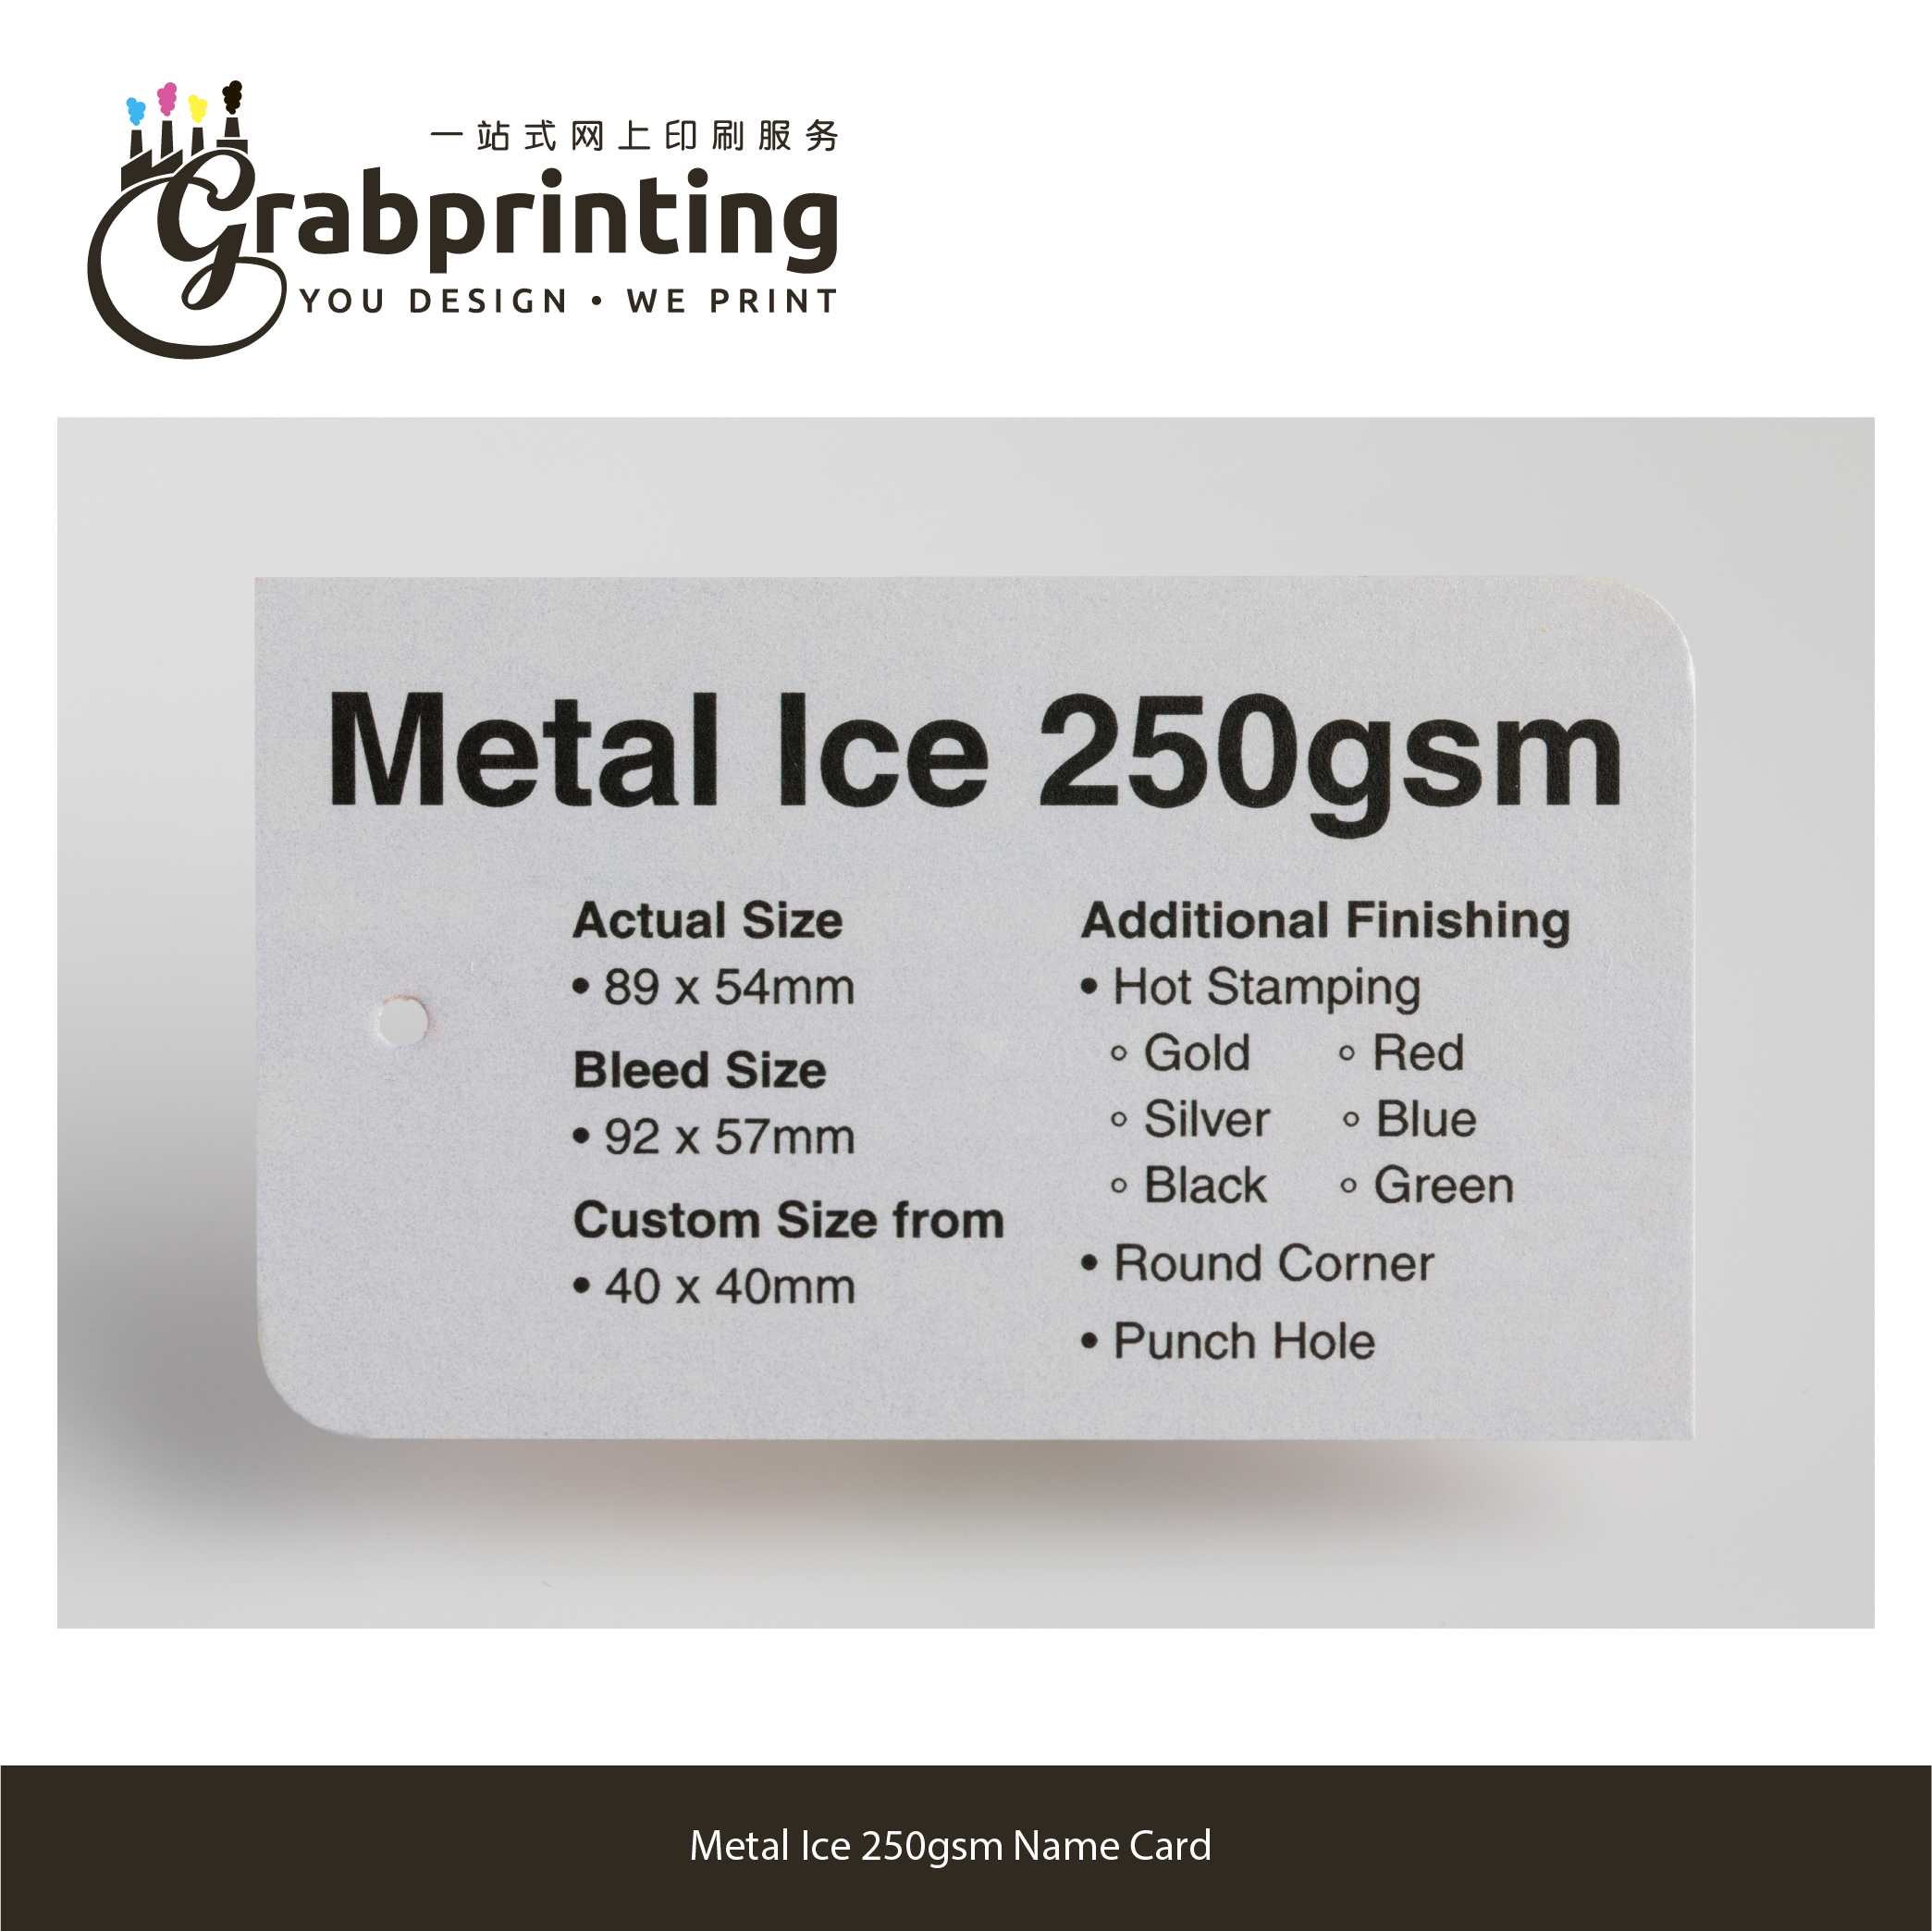 Name Card Sample Kit grabprinting 46 Metal Ice 250gsm Name Card 501px 501px